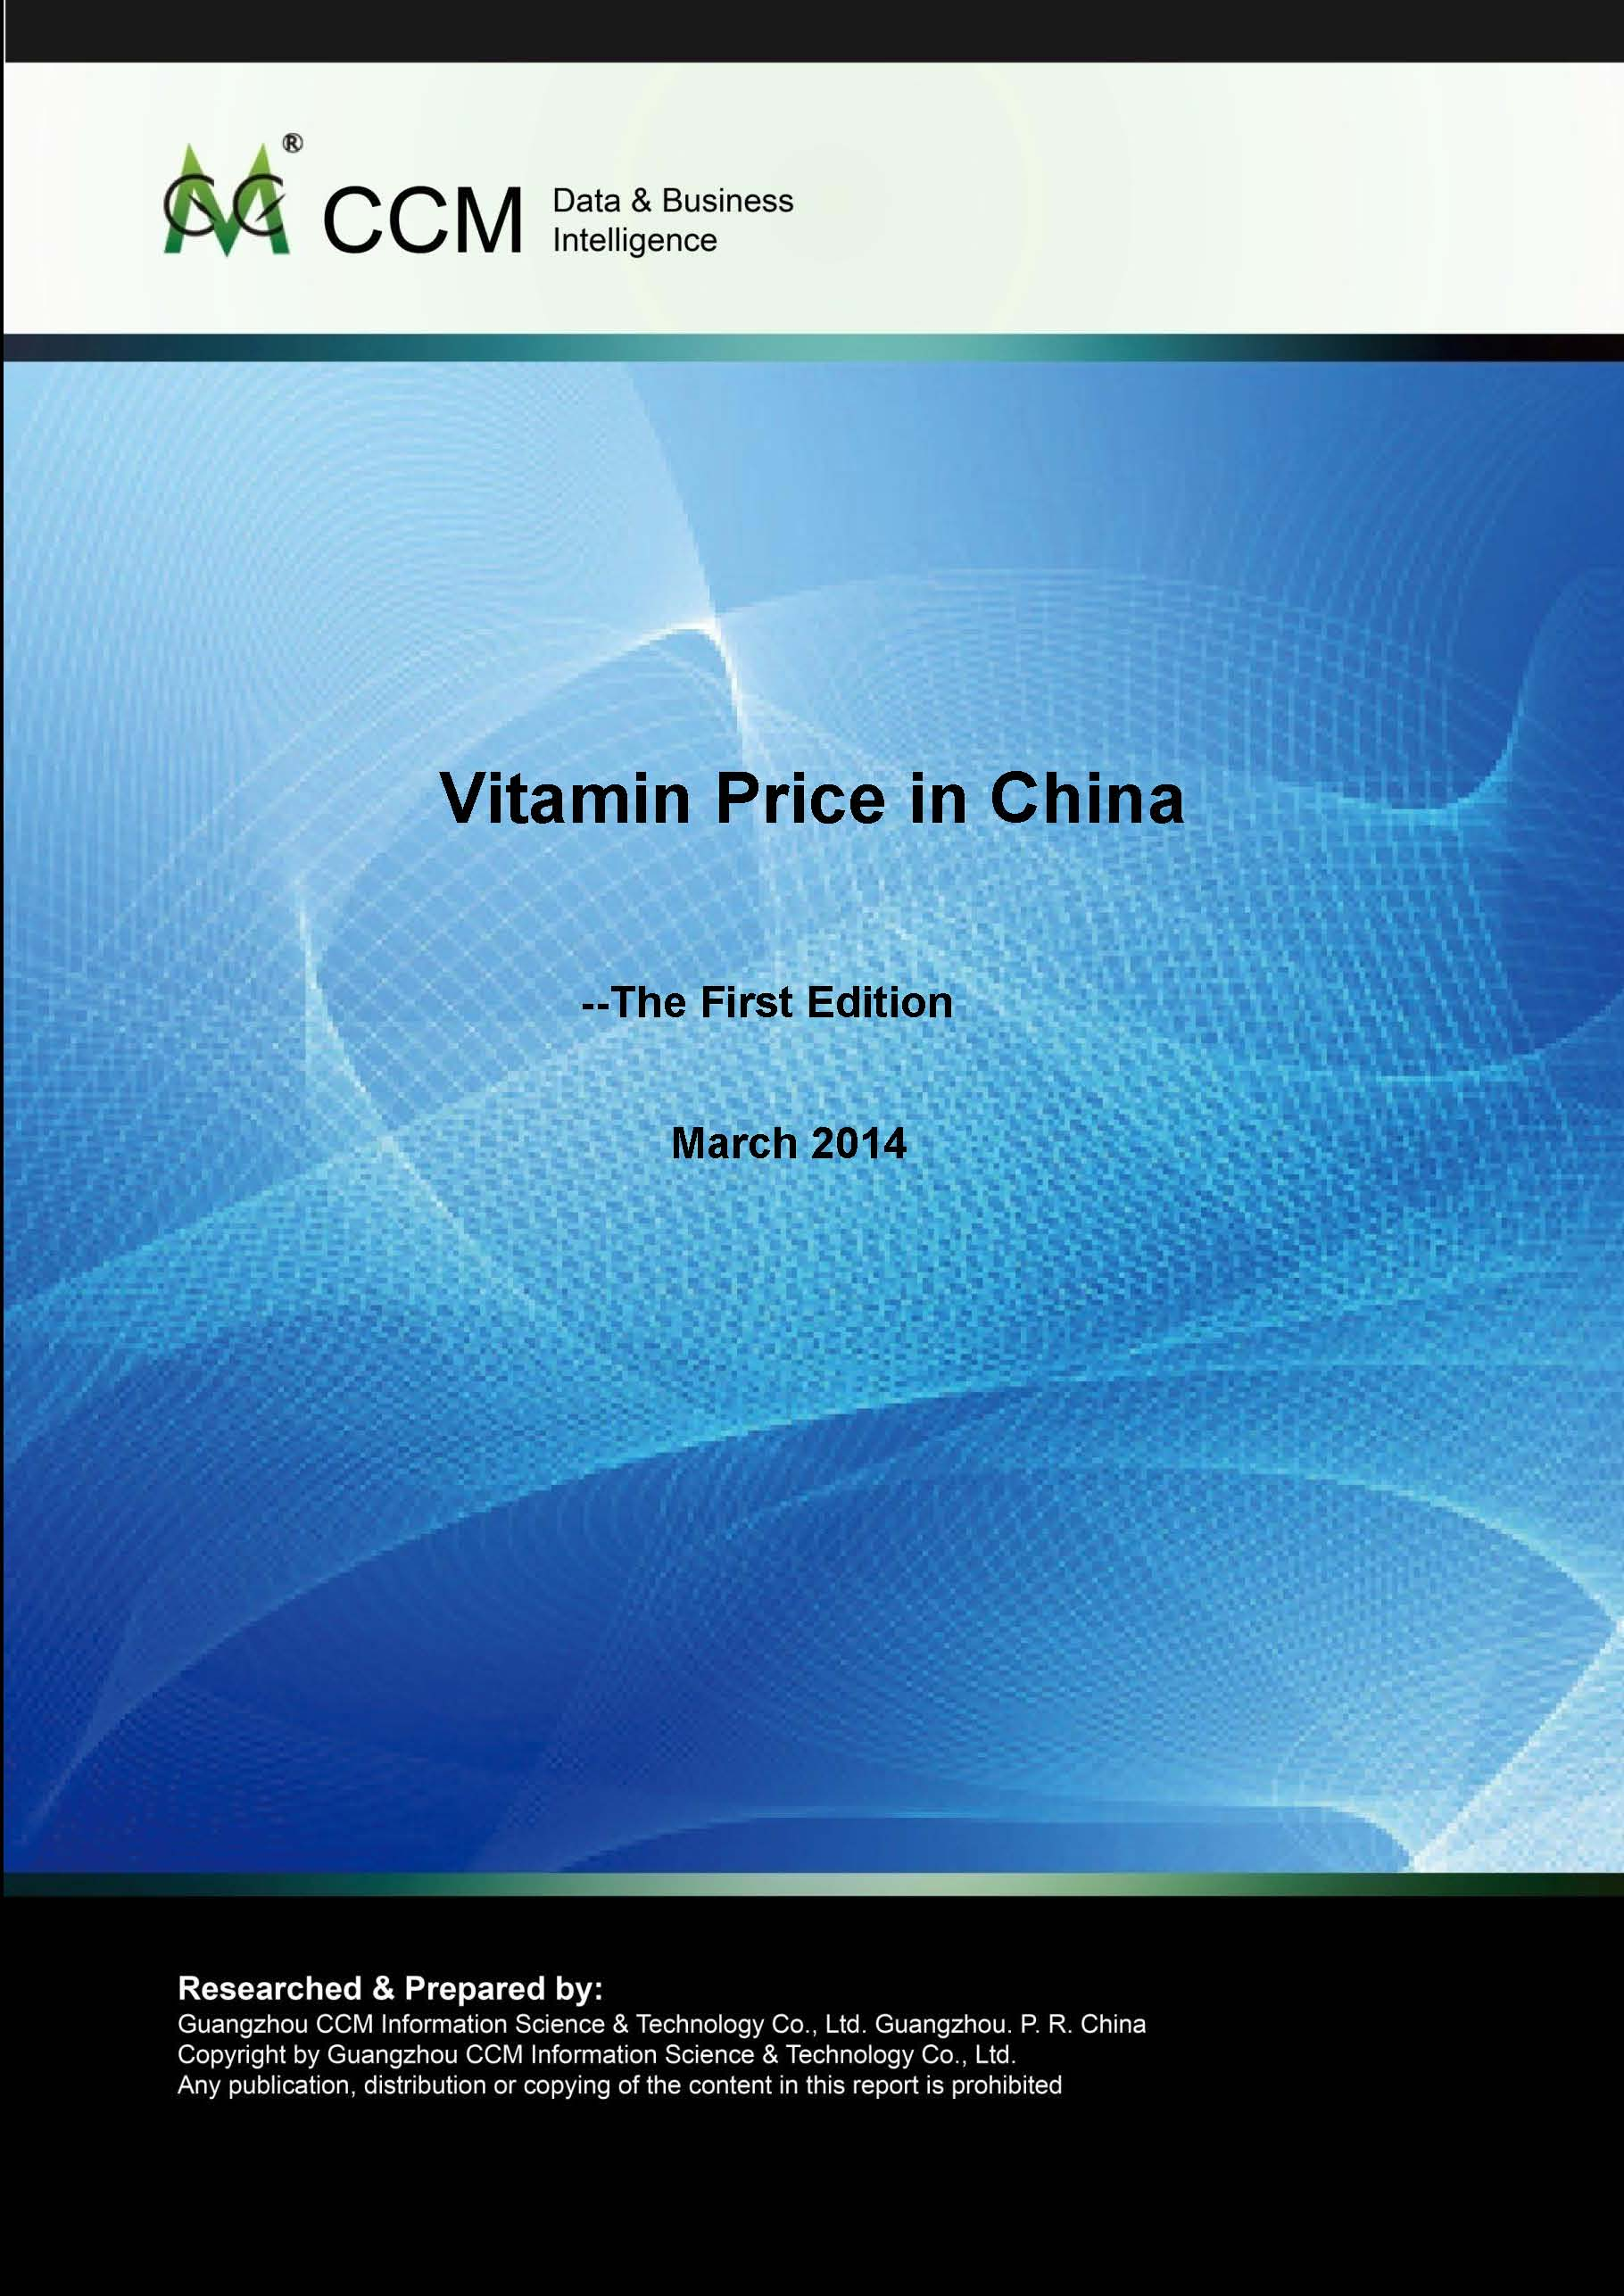 Vitamin Price in China